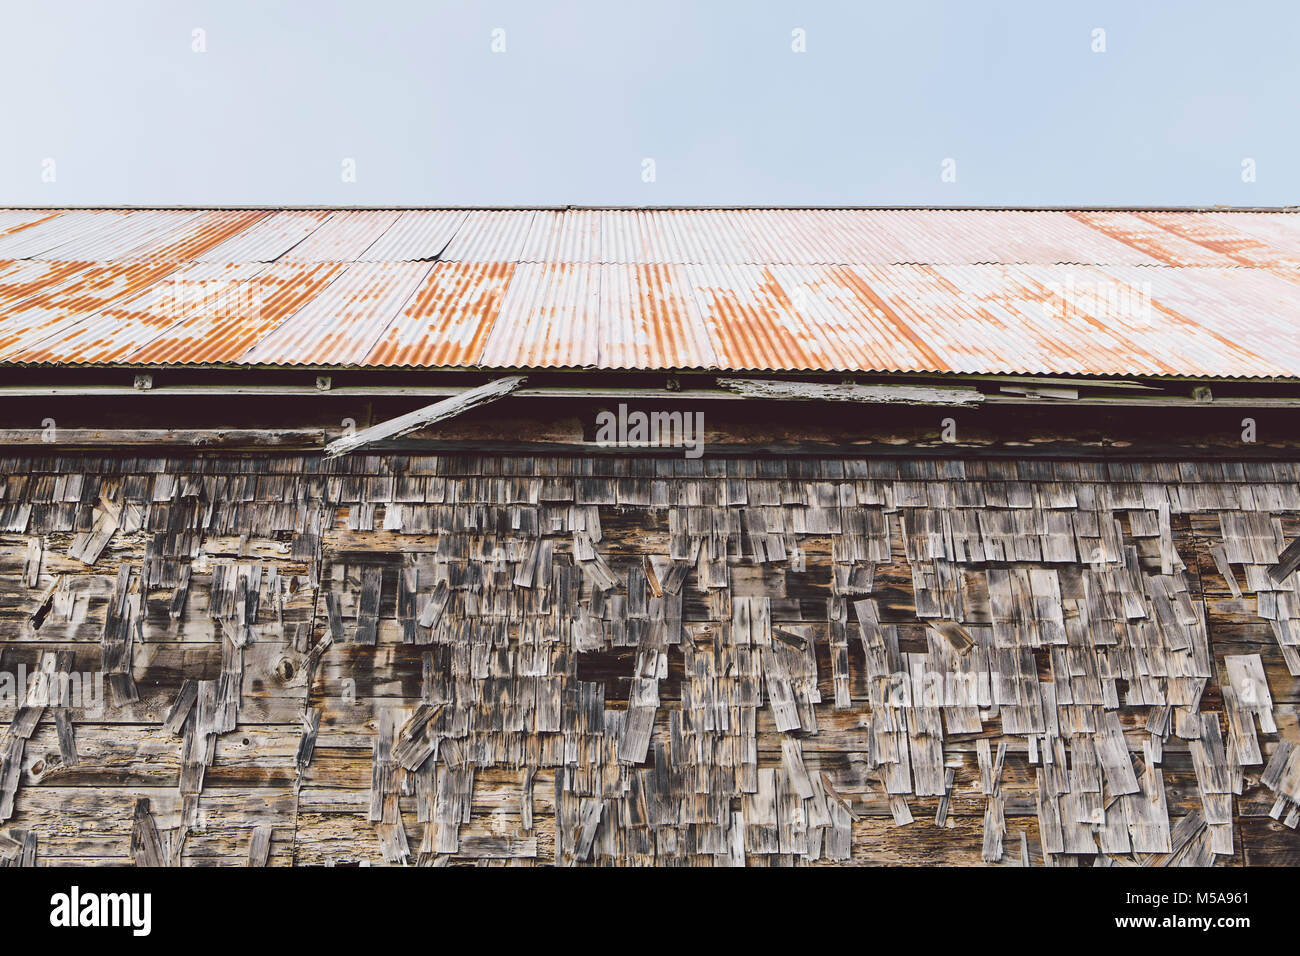 An old farmhouse with wooden shingle tiles on the walls and corrugated iron roof. Silvery grey colours. - Stock Image